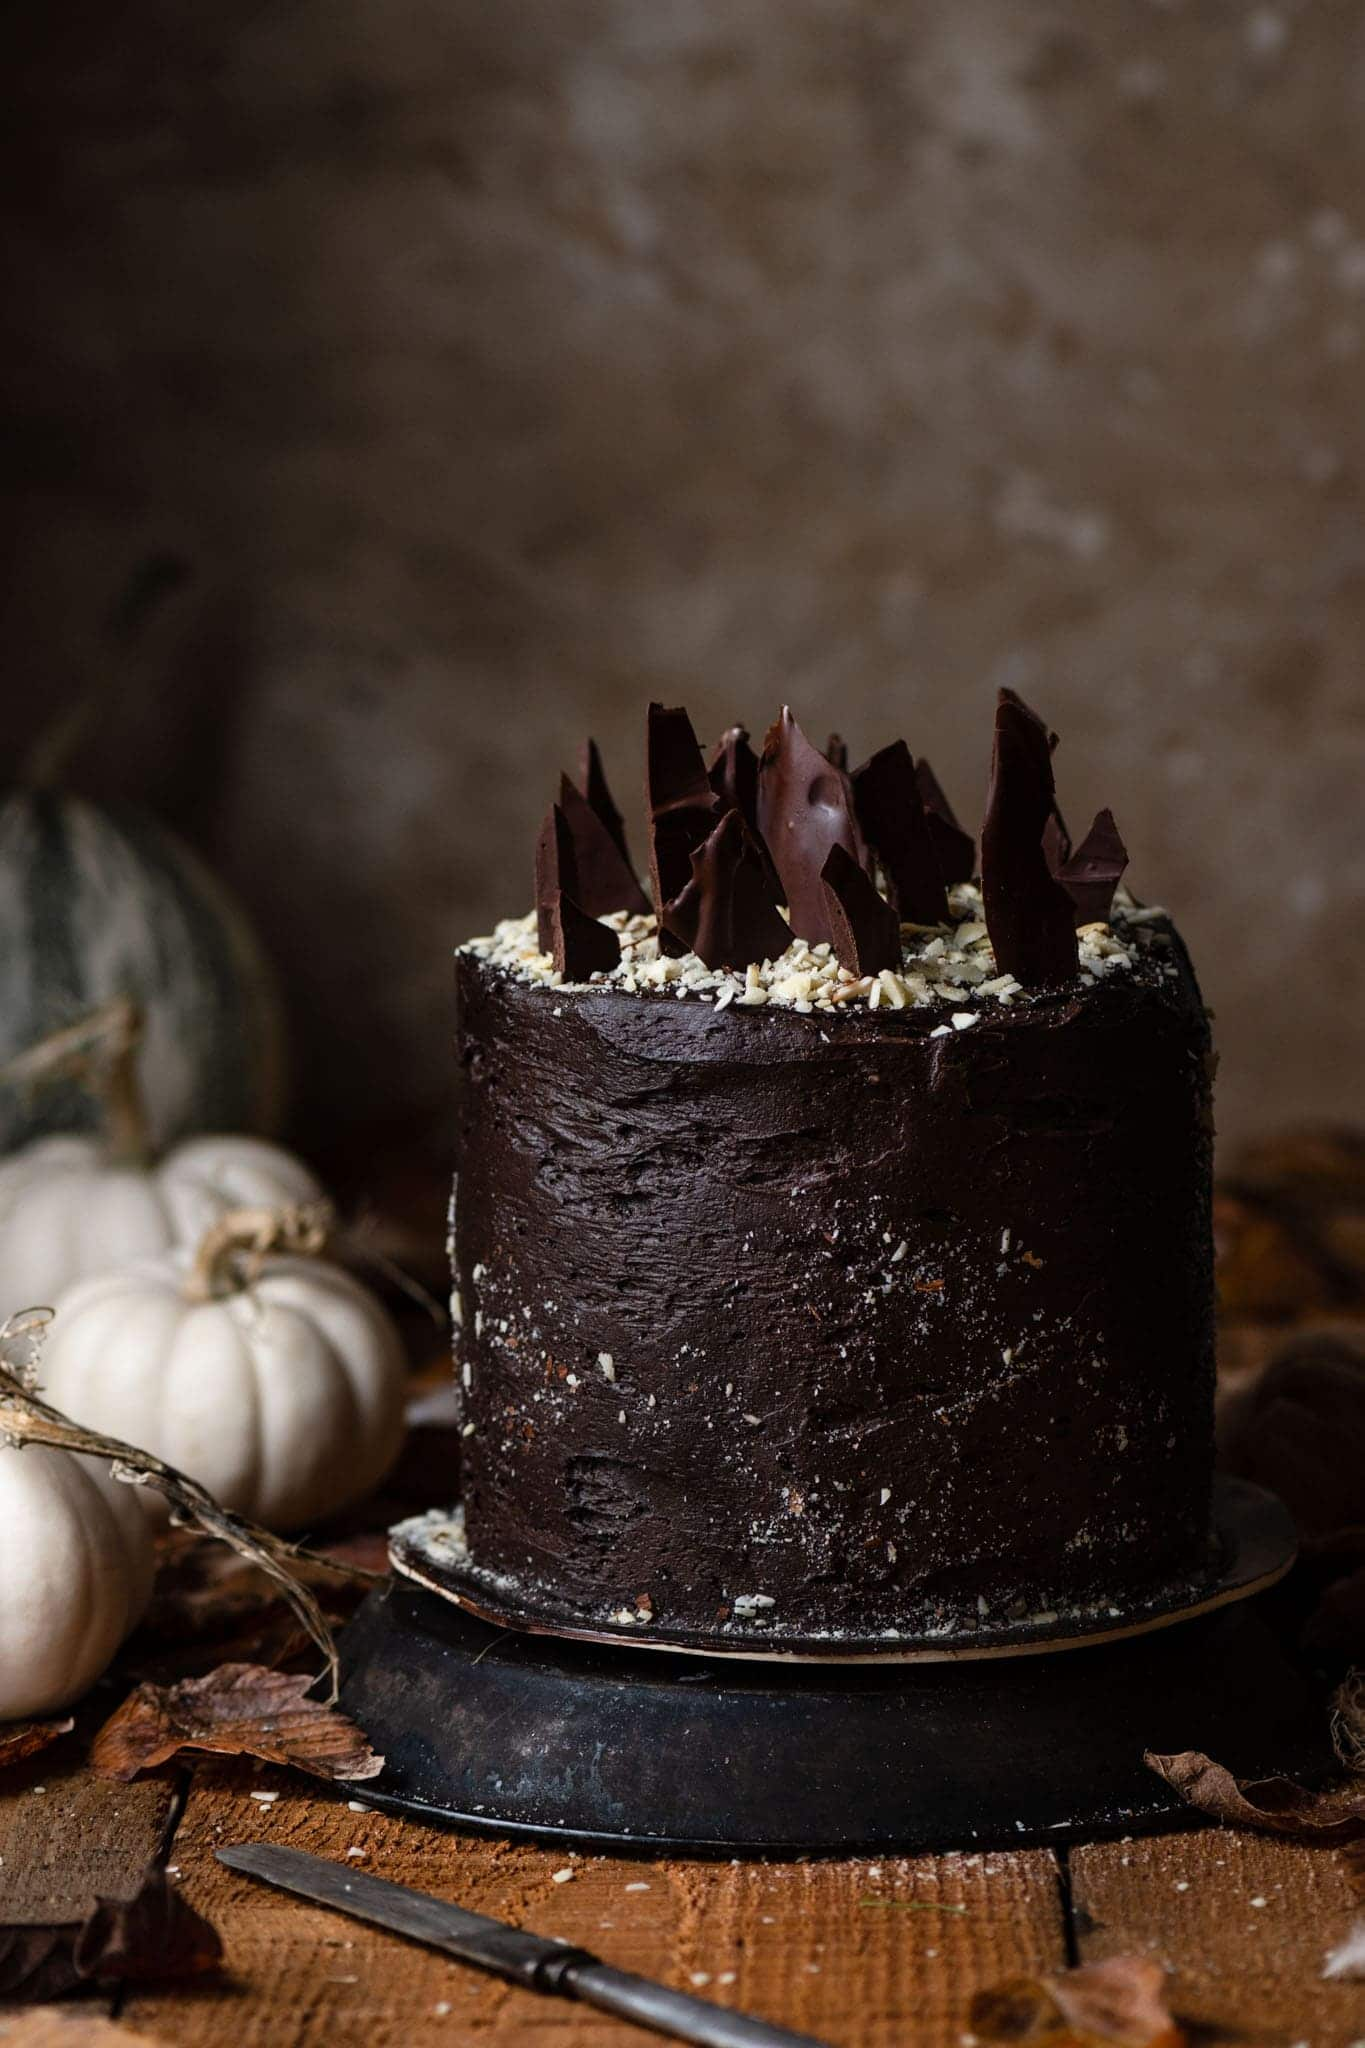 Halloween Cake with chocolate buttercream, hazelnut flour, and chocolate shards